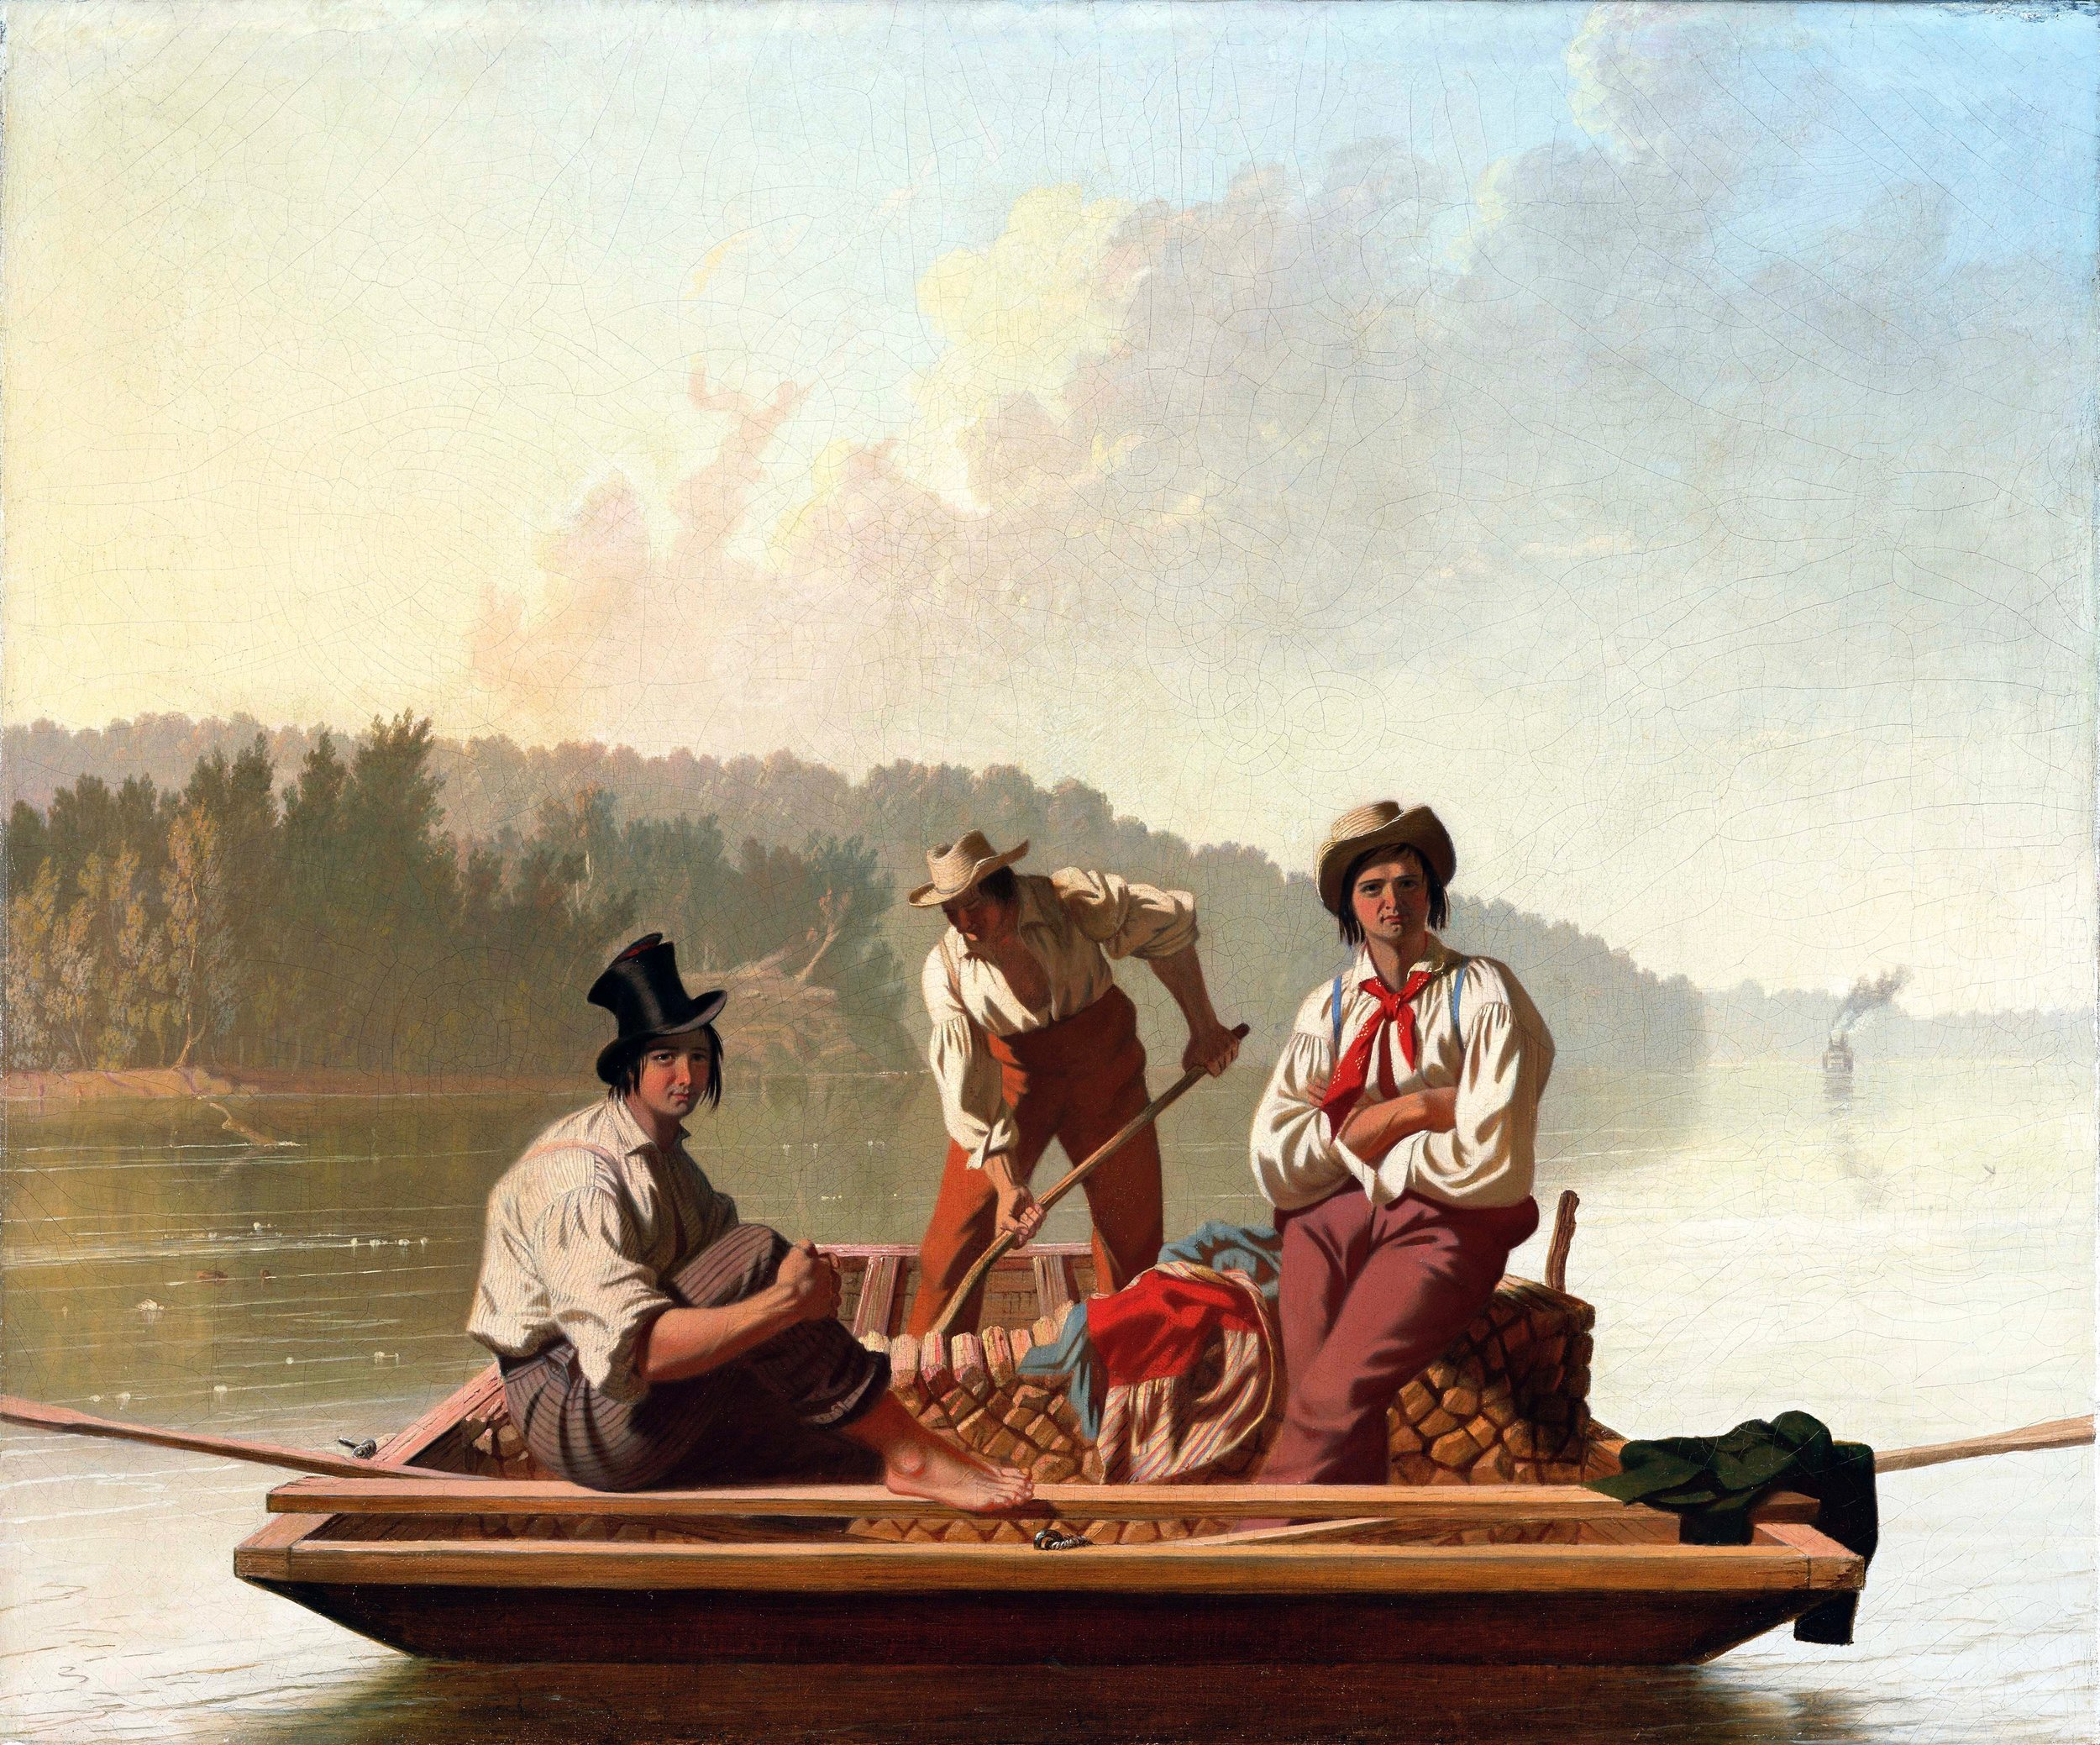 George Caleb Bingham (American, 1811-1879)  Boatmen on the Missouri , 1846 (Fine Arts Museums of San Francisco, San Francisco, CA) (Gift of Mr. and Mrs. John D. Rockefeller 3rd, 1979.7.15)  (click to enlarge)